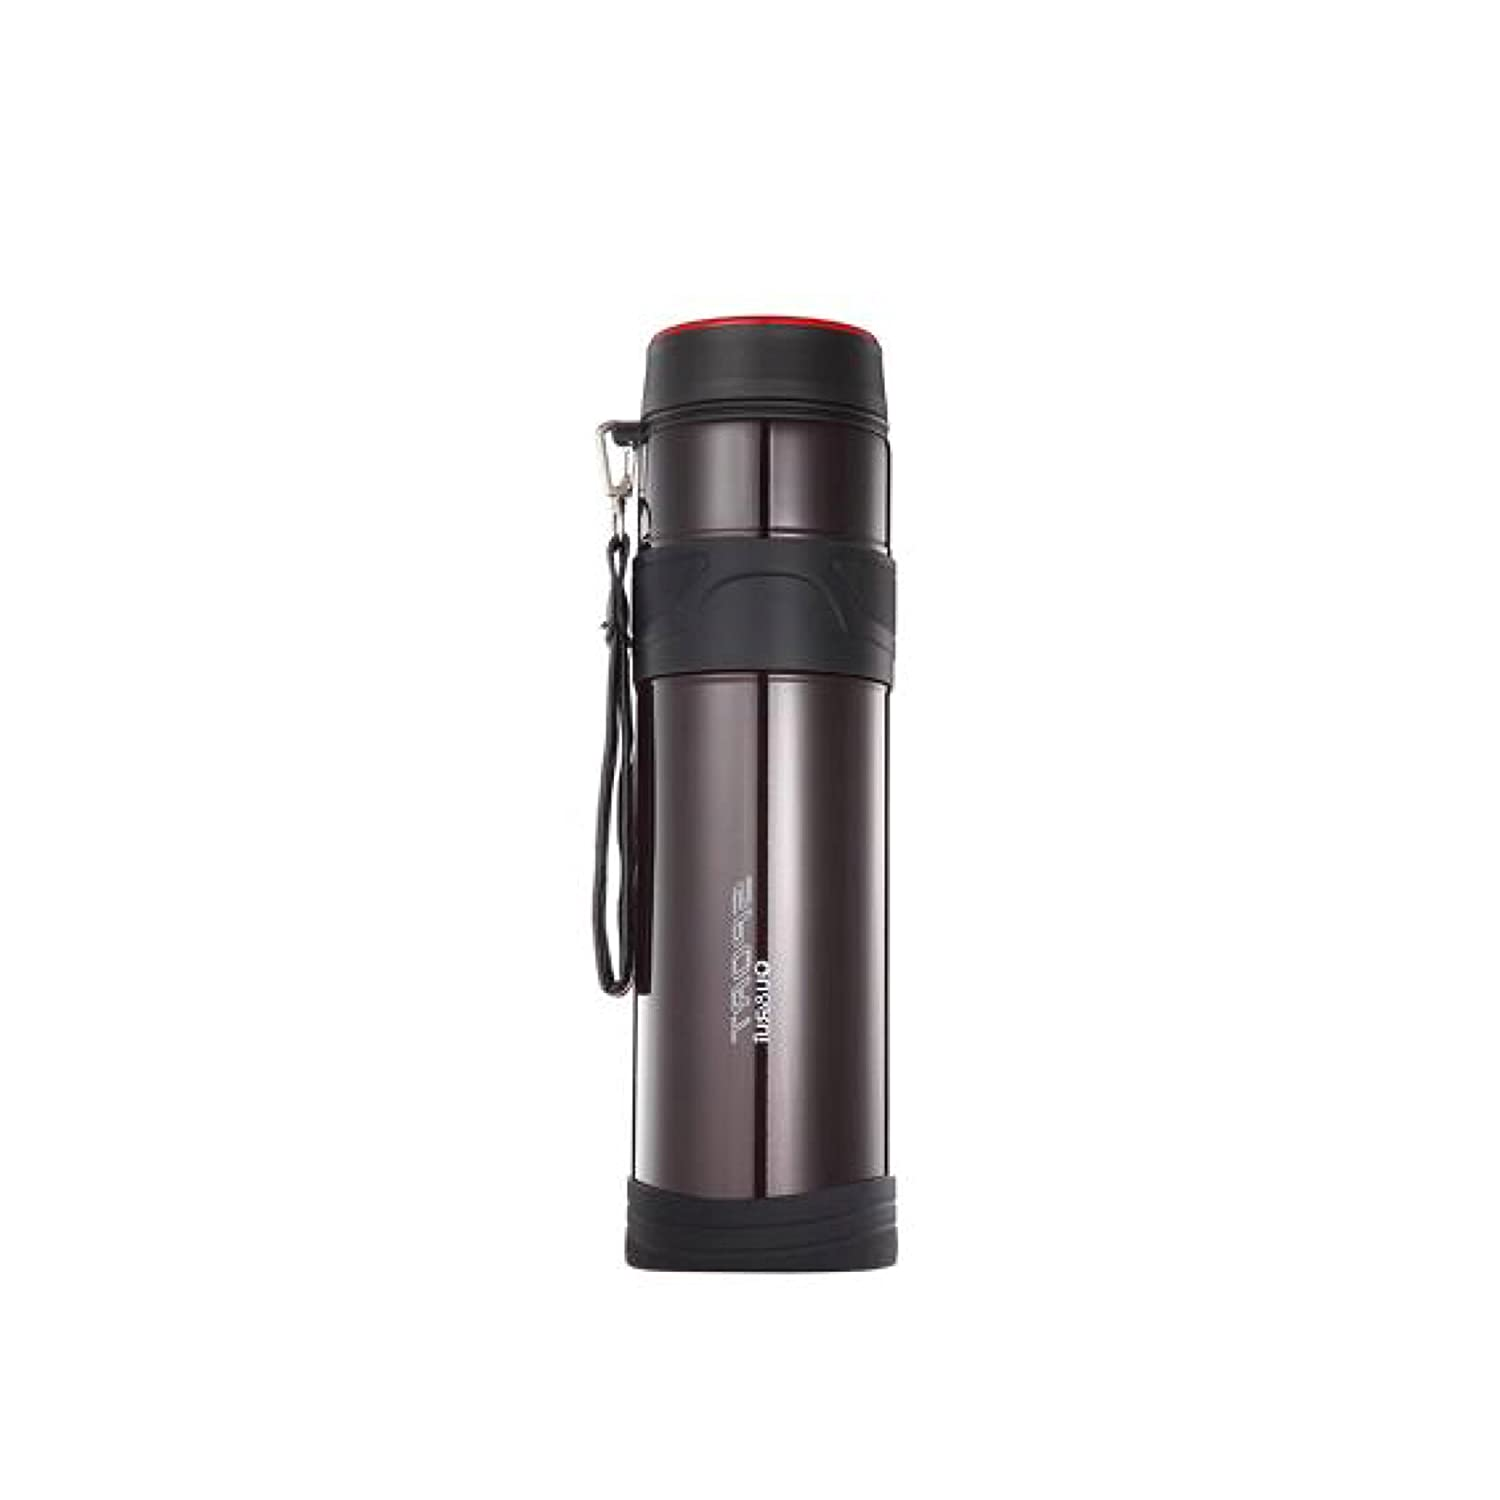 6c6e29e989cb Thermos,Car Vacuum Flask,Large Portable Travel Pot,Stainless ...